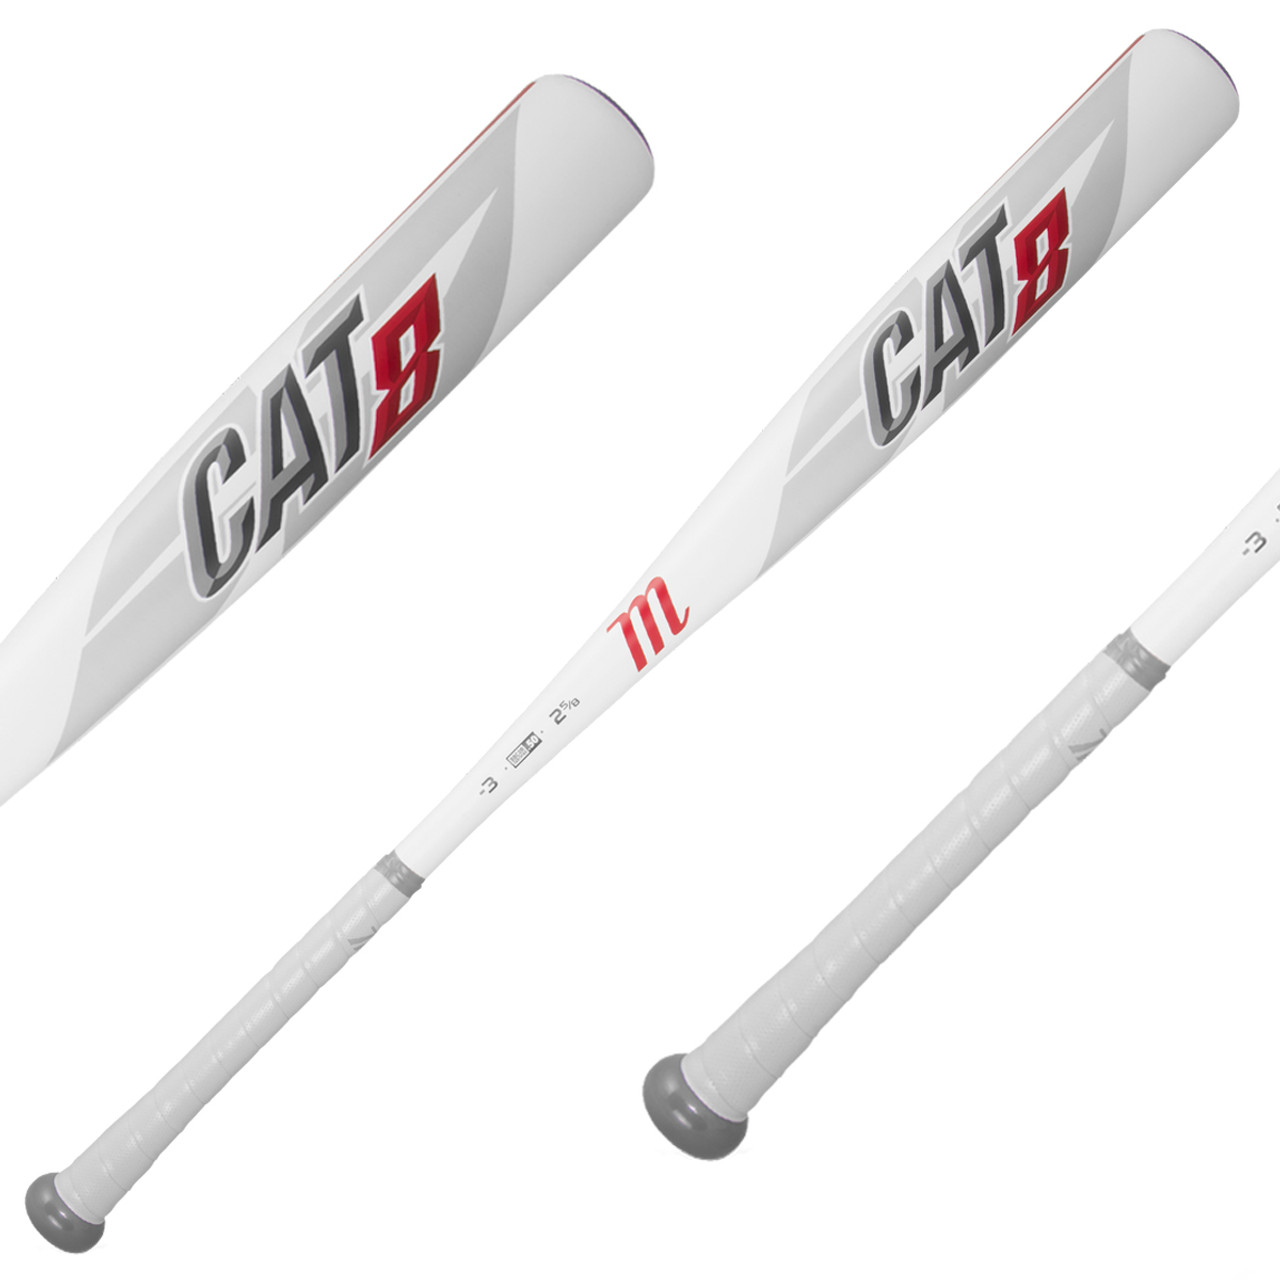 Marucci CAT8 MCBC8 -3 BBCOR Baseball Bat